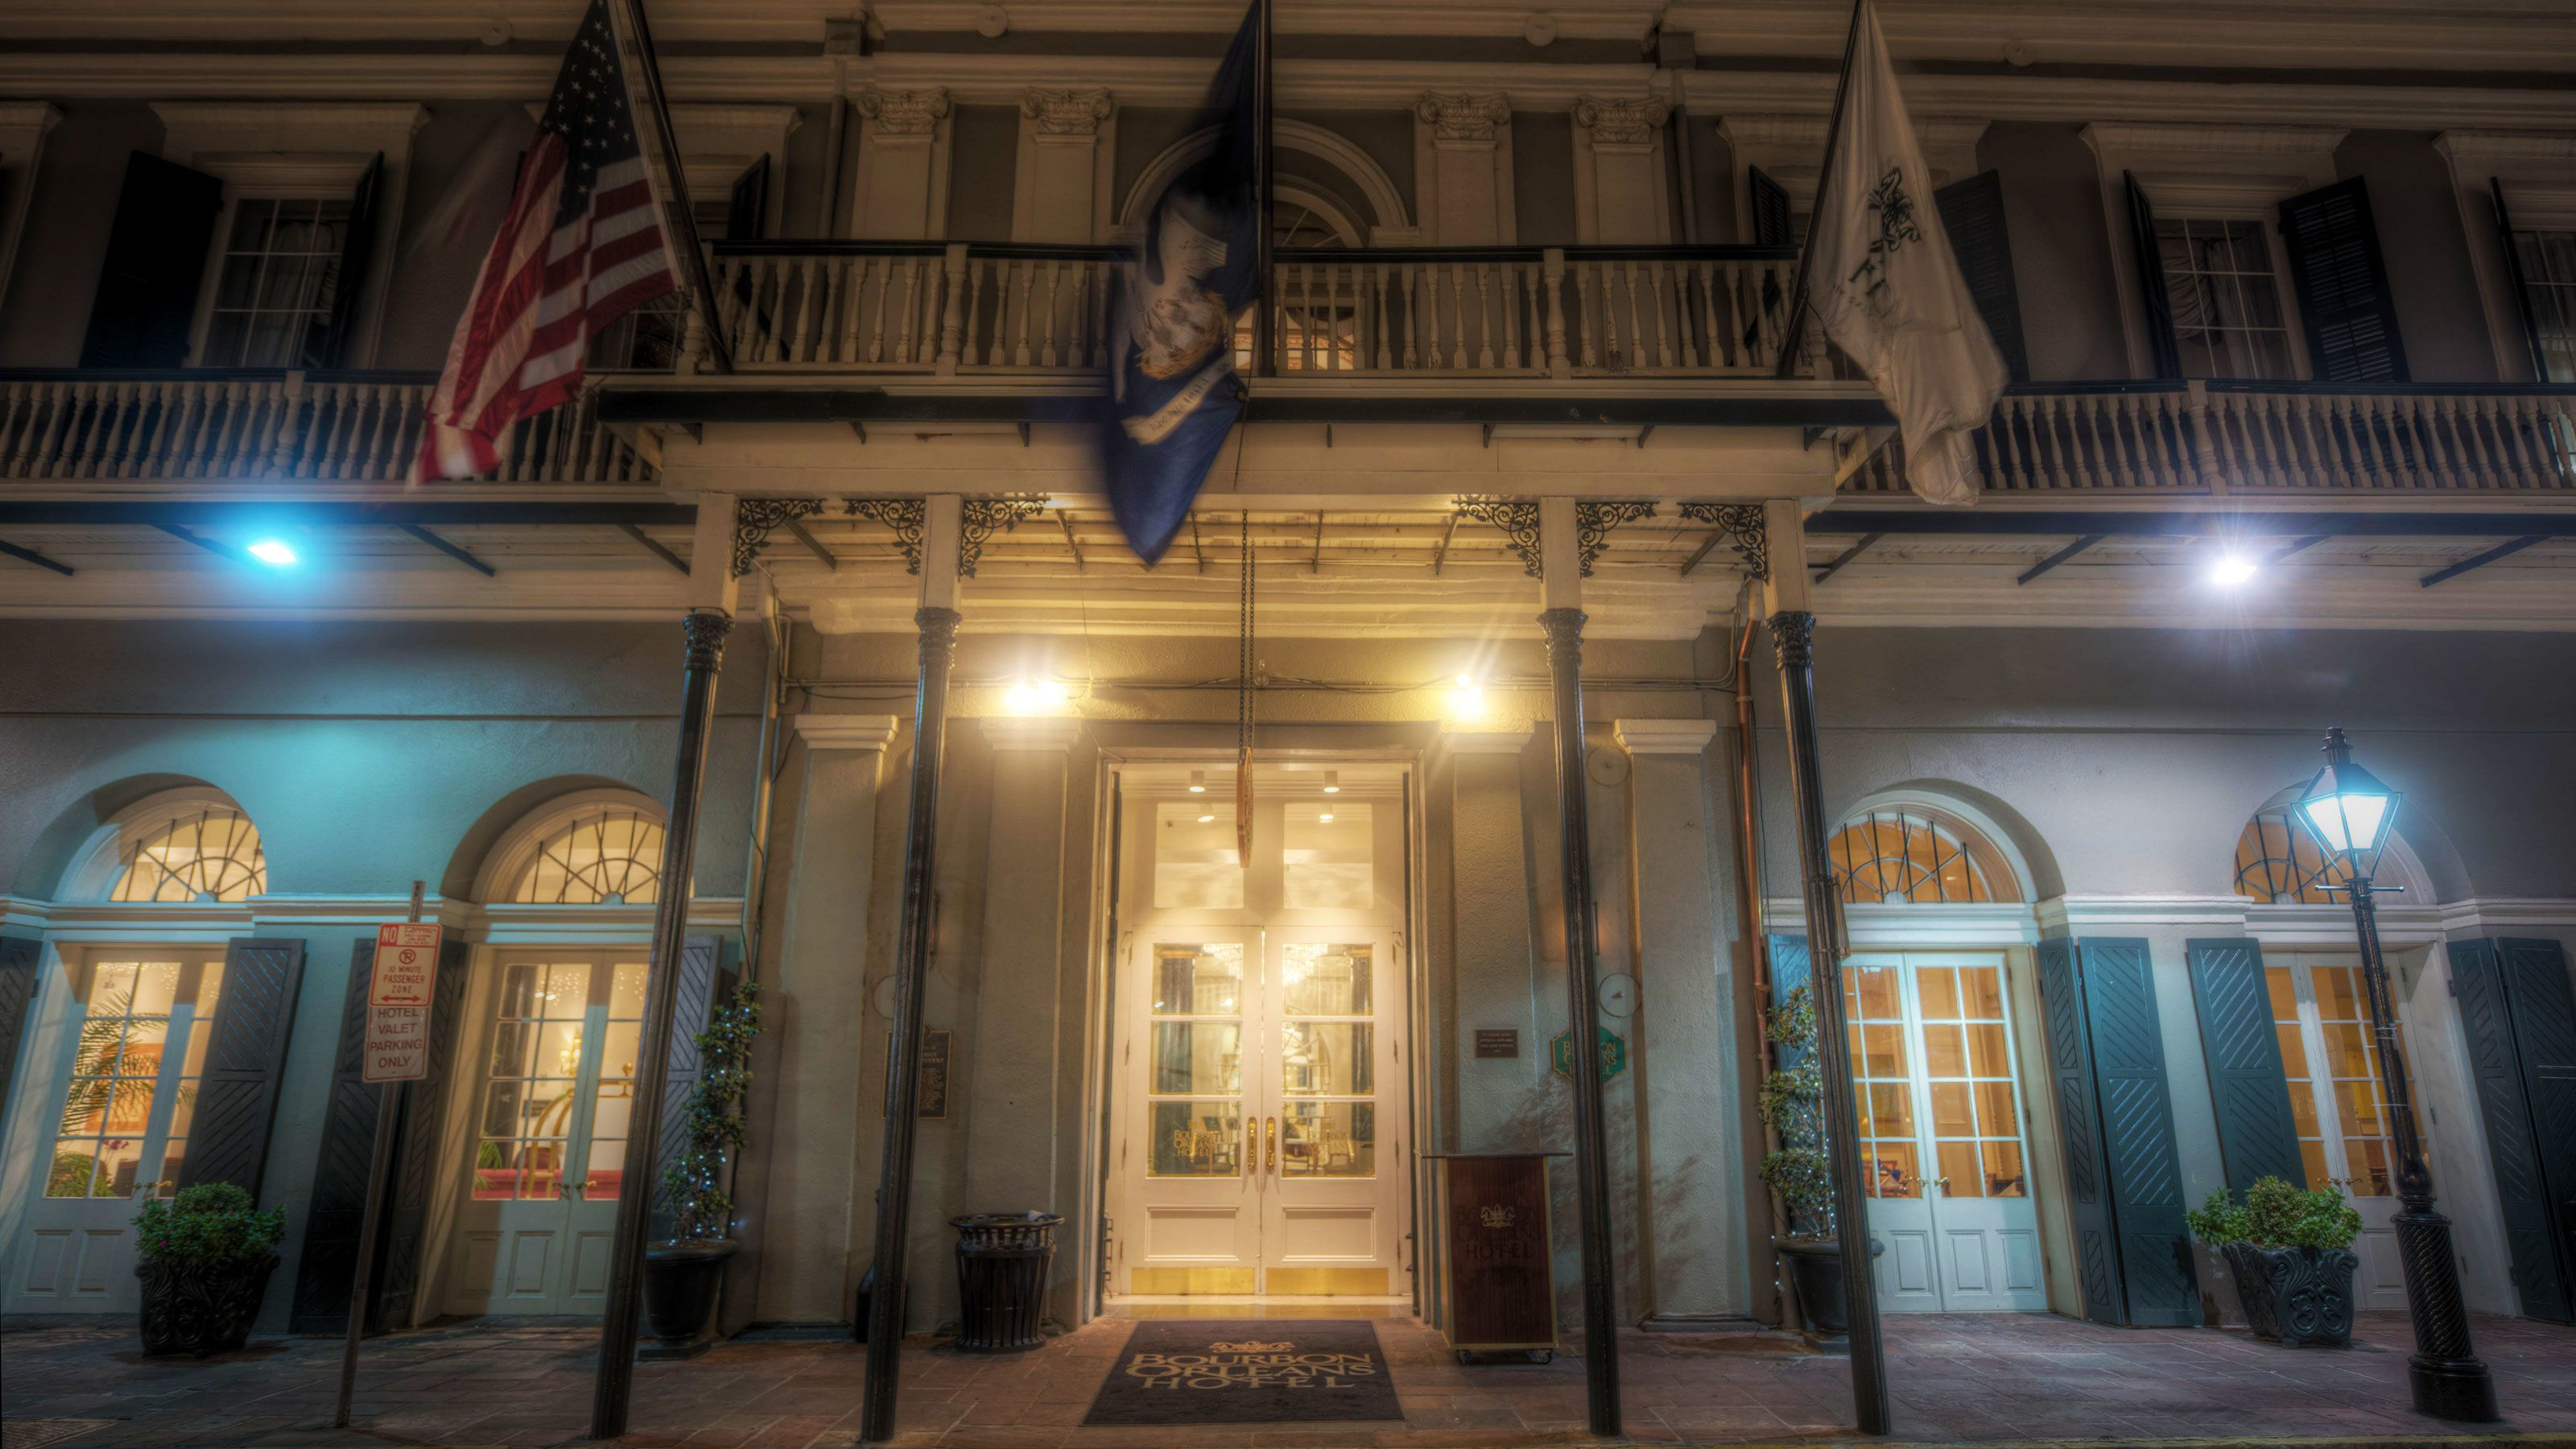 Elegant front of building in the French Quarter of New Orleans